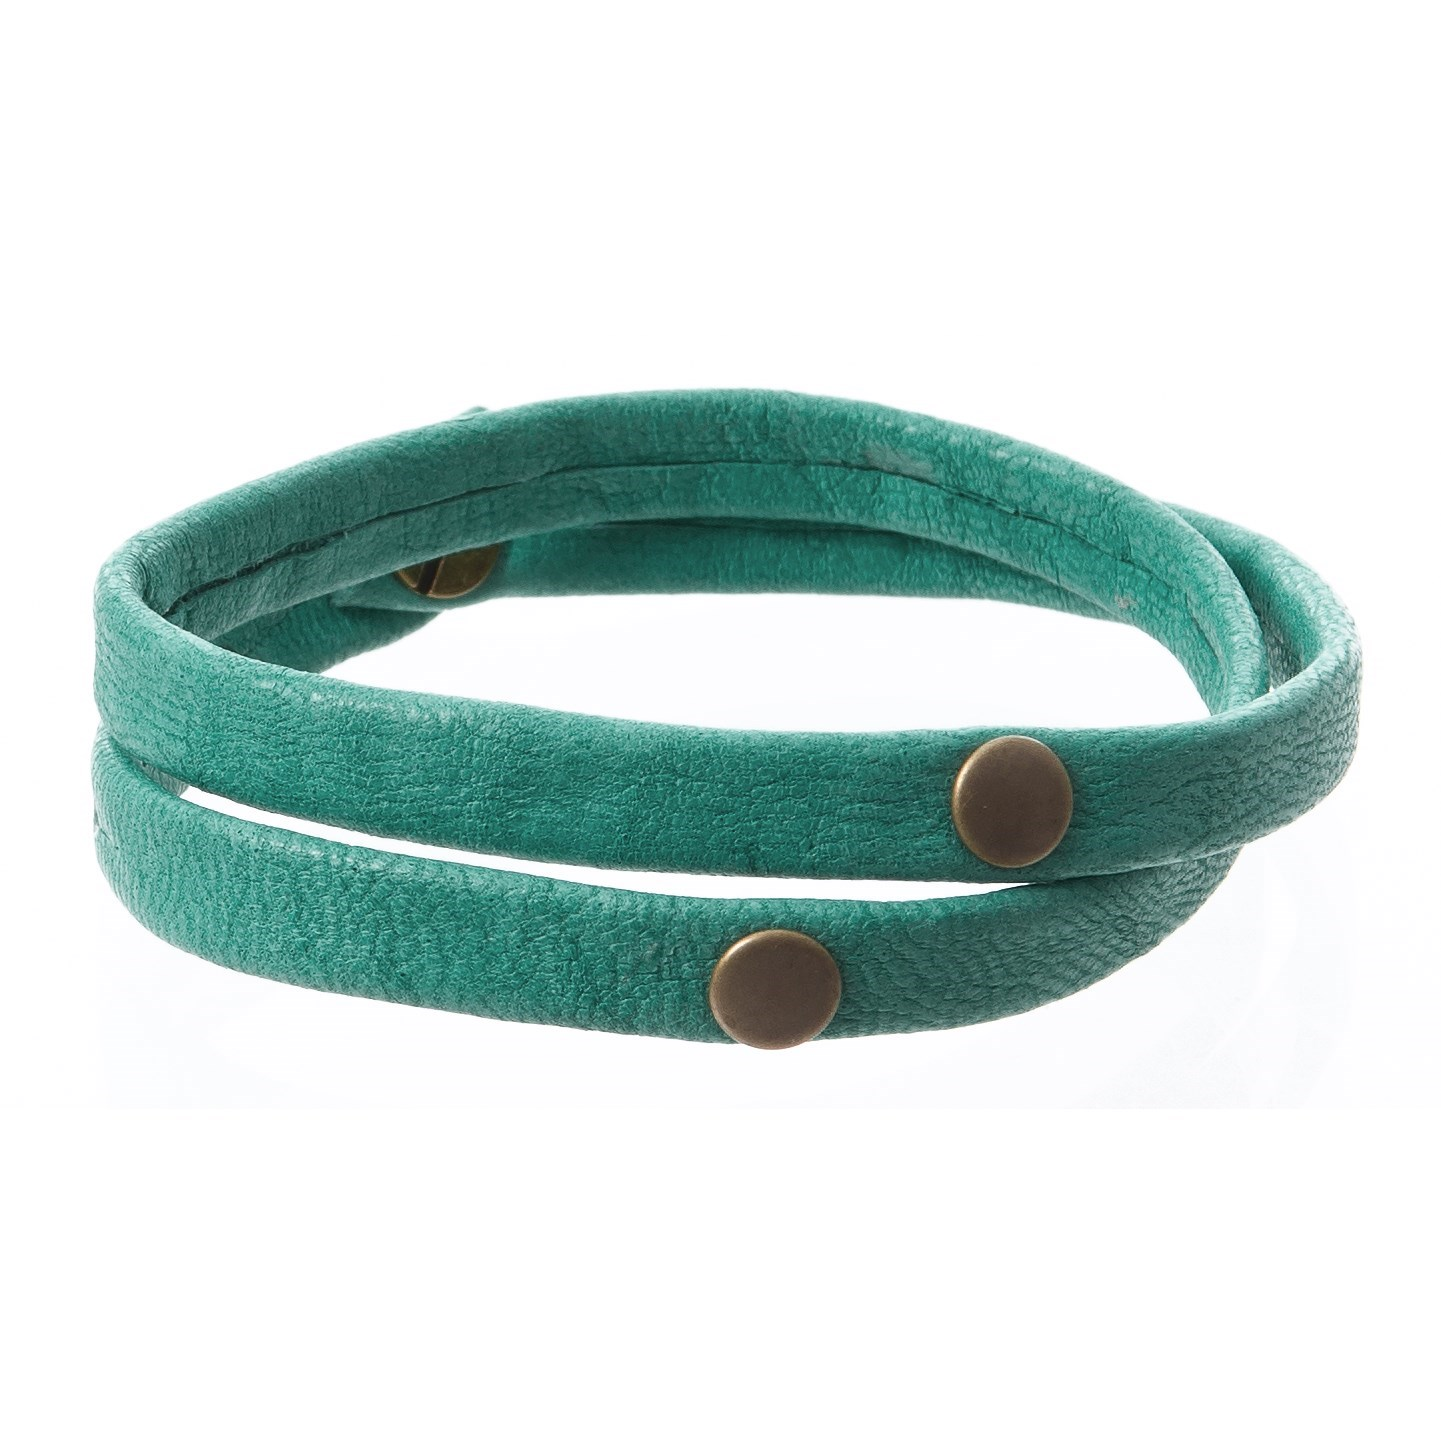 Giving Bracelet Double Warrior Wrap Leather